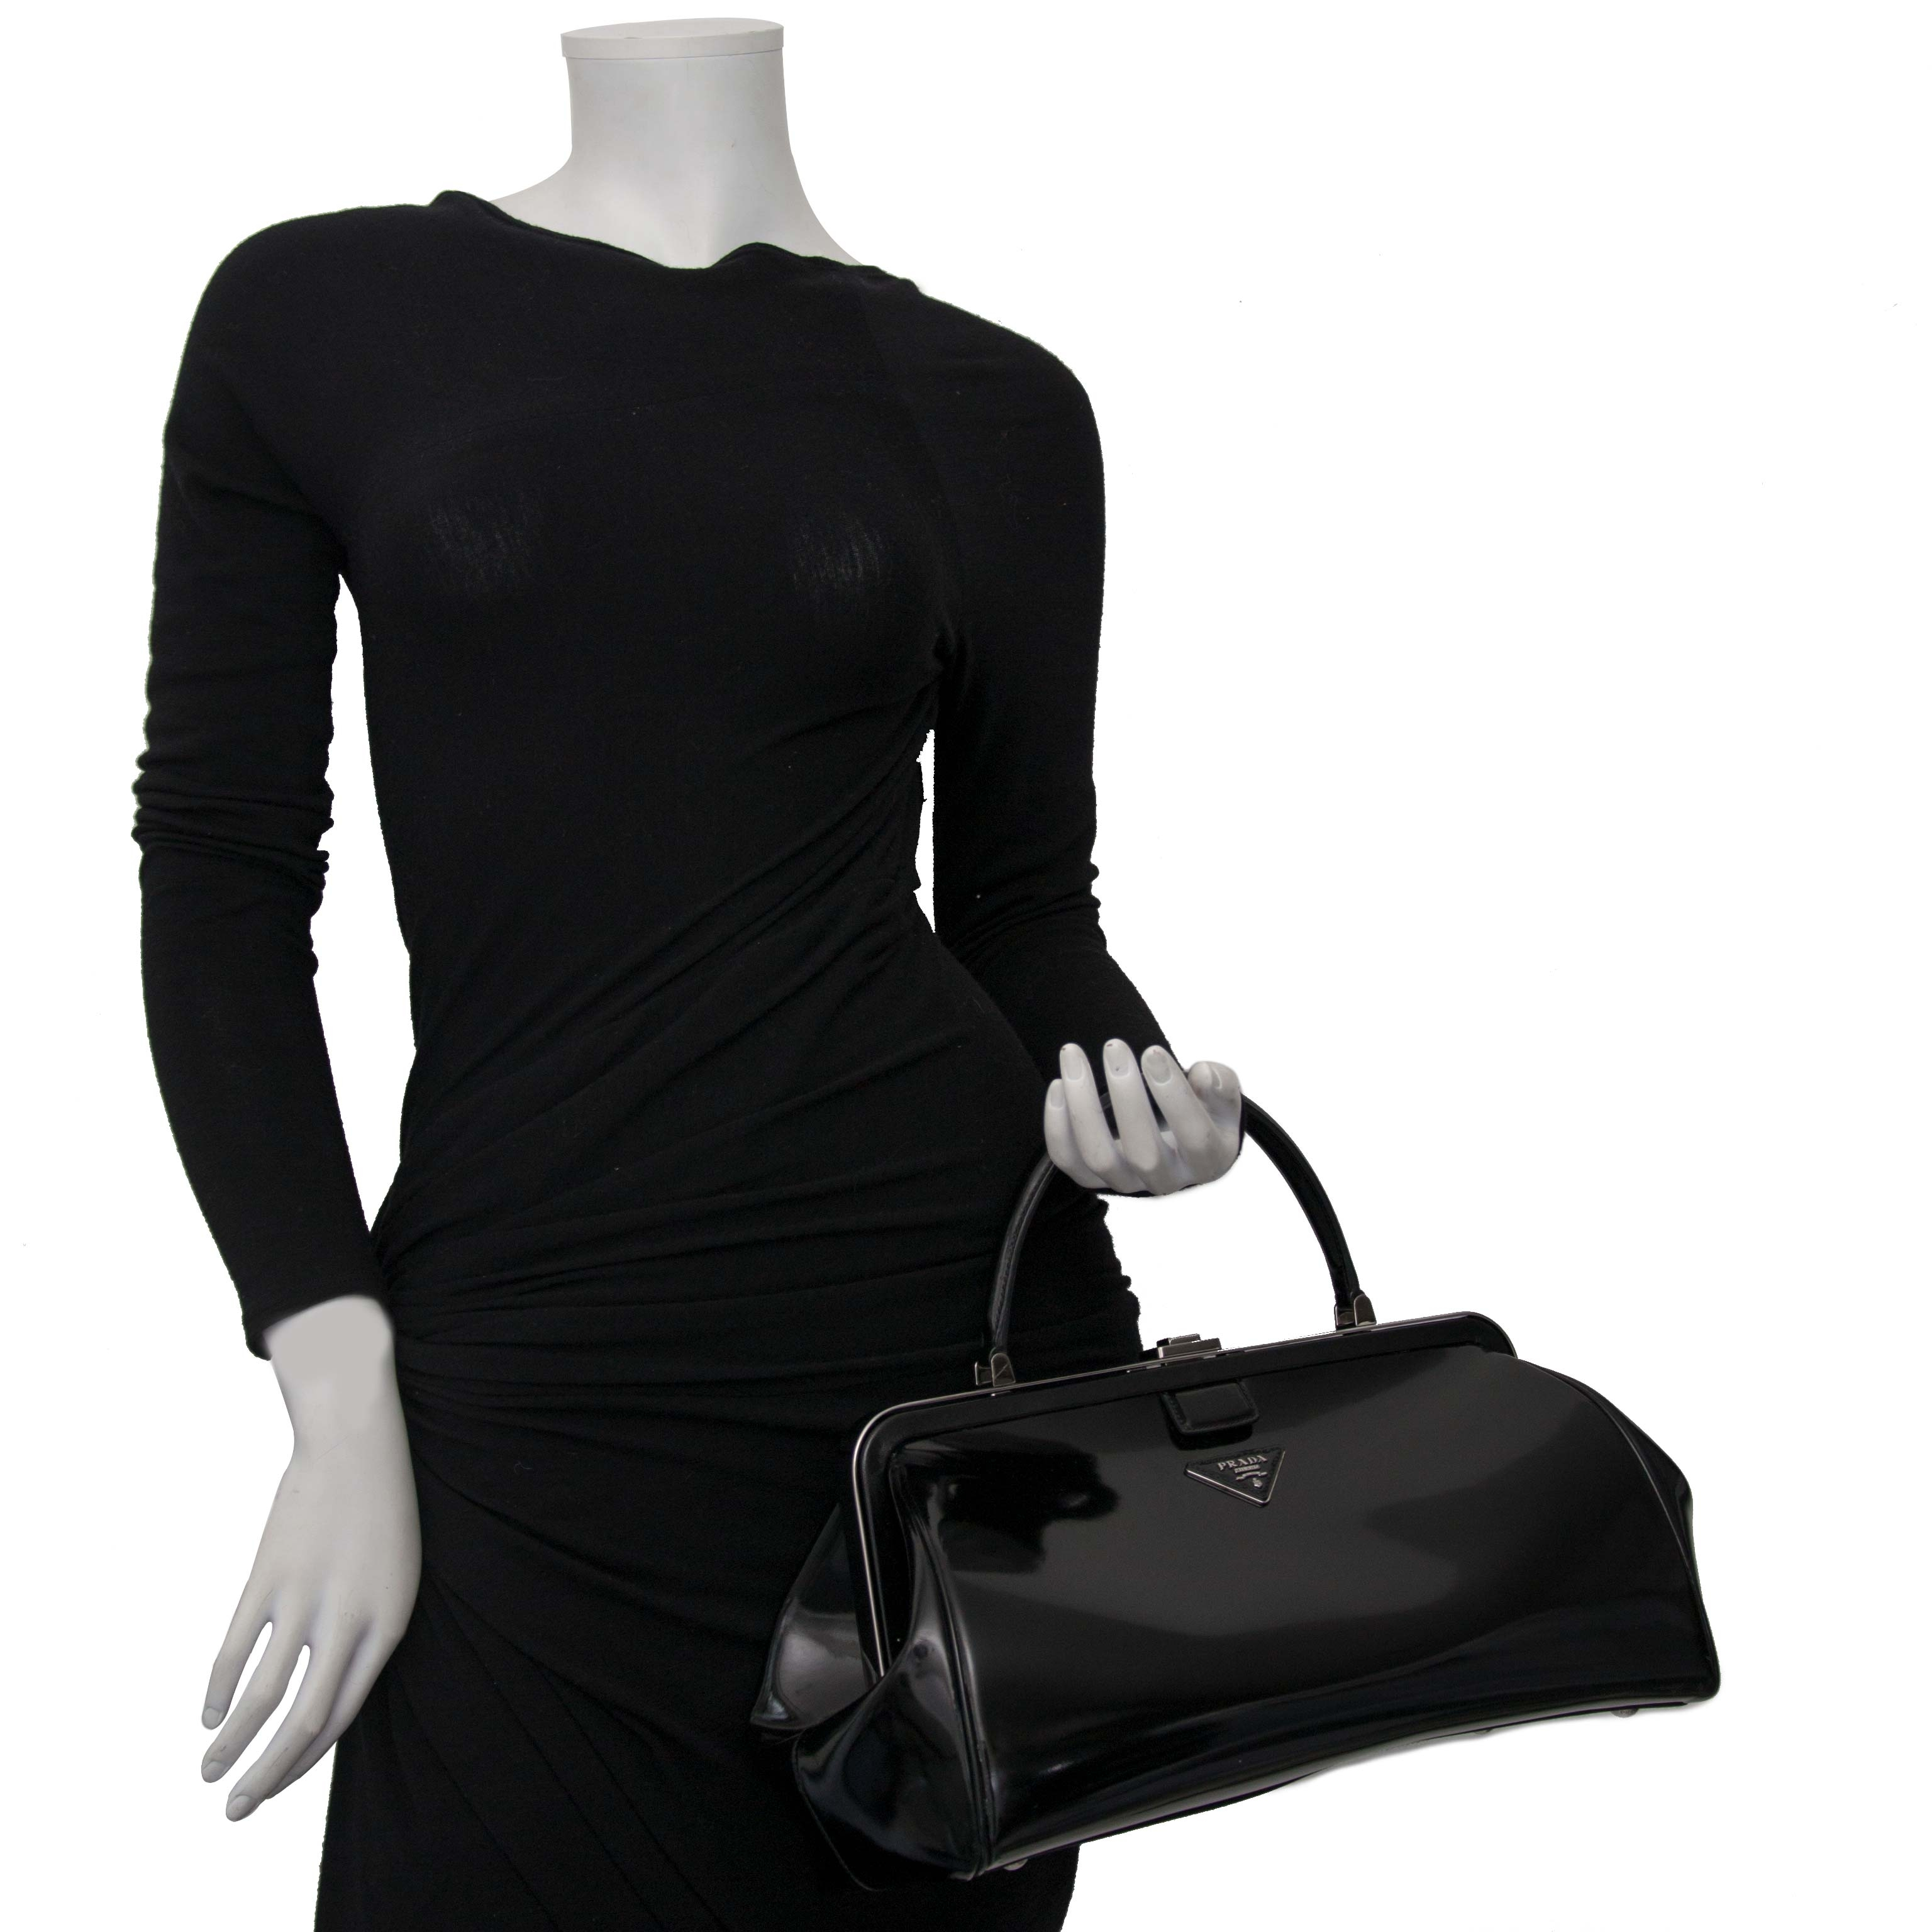 Prada Black Patent Bowling Bag Buy authentic designer Prada secondhand bags at Labellov at the best price. Safe and secure shopping. Koop tweedehands authentieke Prada tassen bij designer webwinkel labellov.